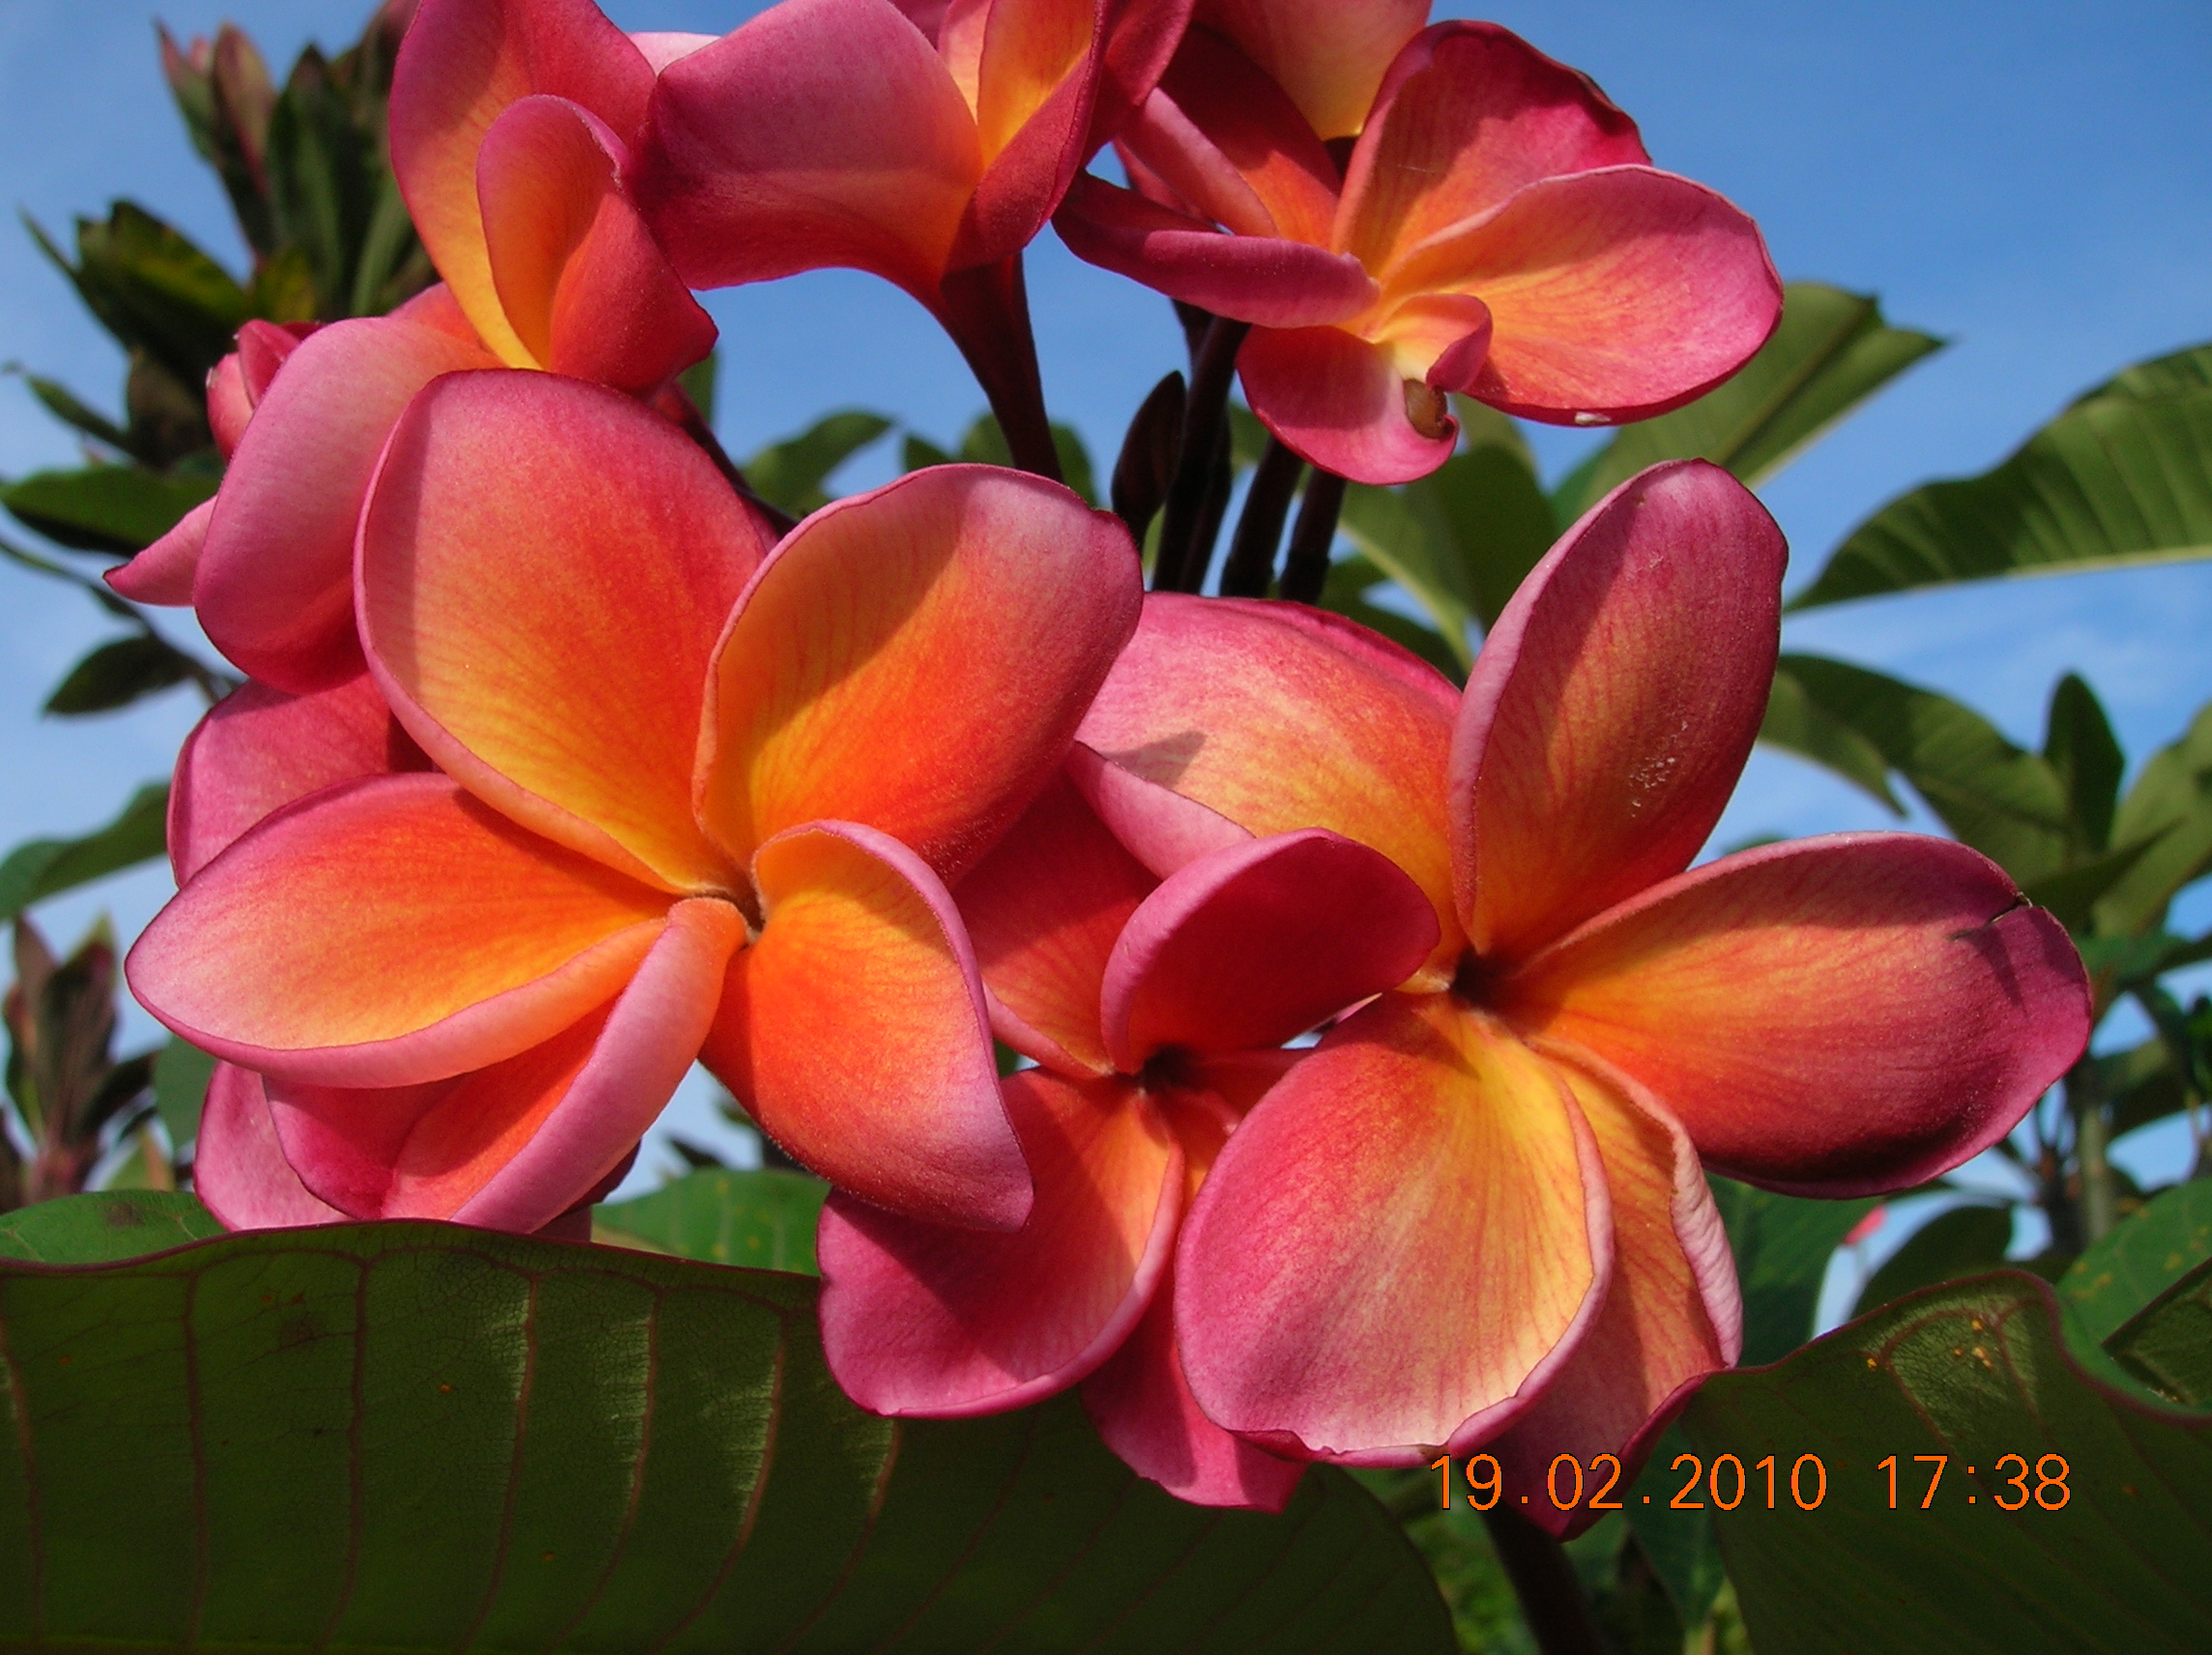 Description Bunga kemboja (Plumeria) merah.JPG